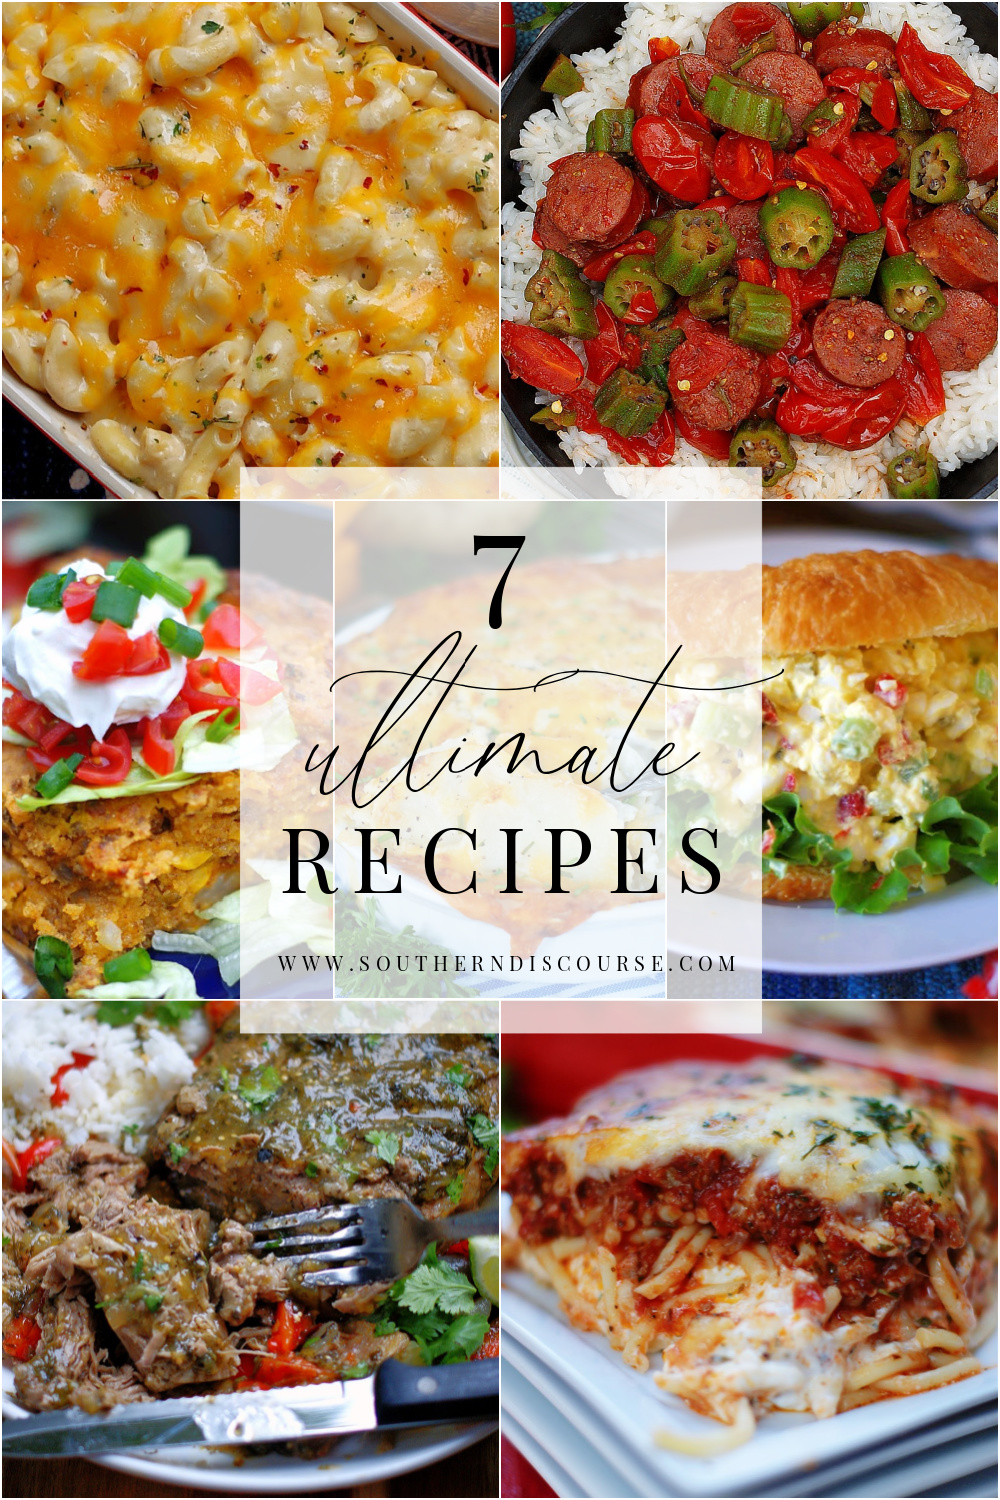 7 recipes that earn their ultimate badge with delicious ingredients, loads of flavor & by how easy they are to put together.